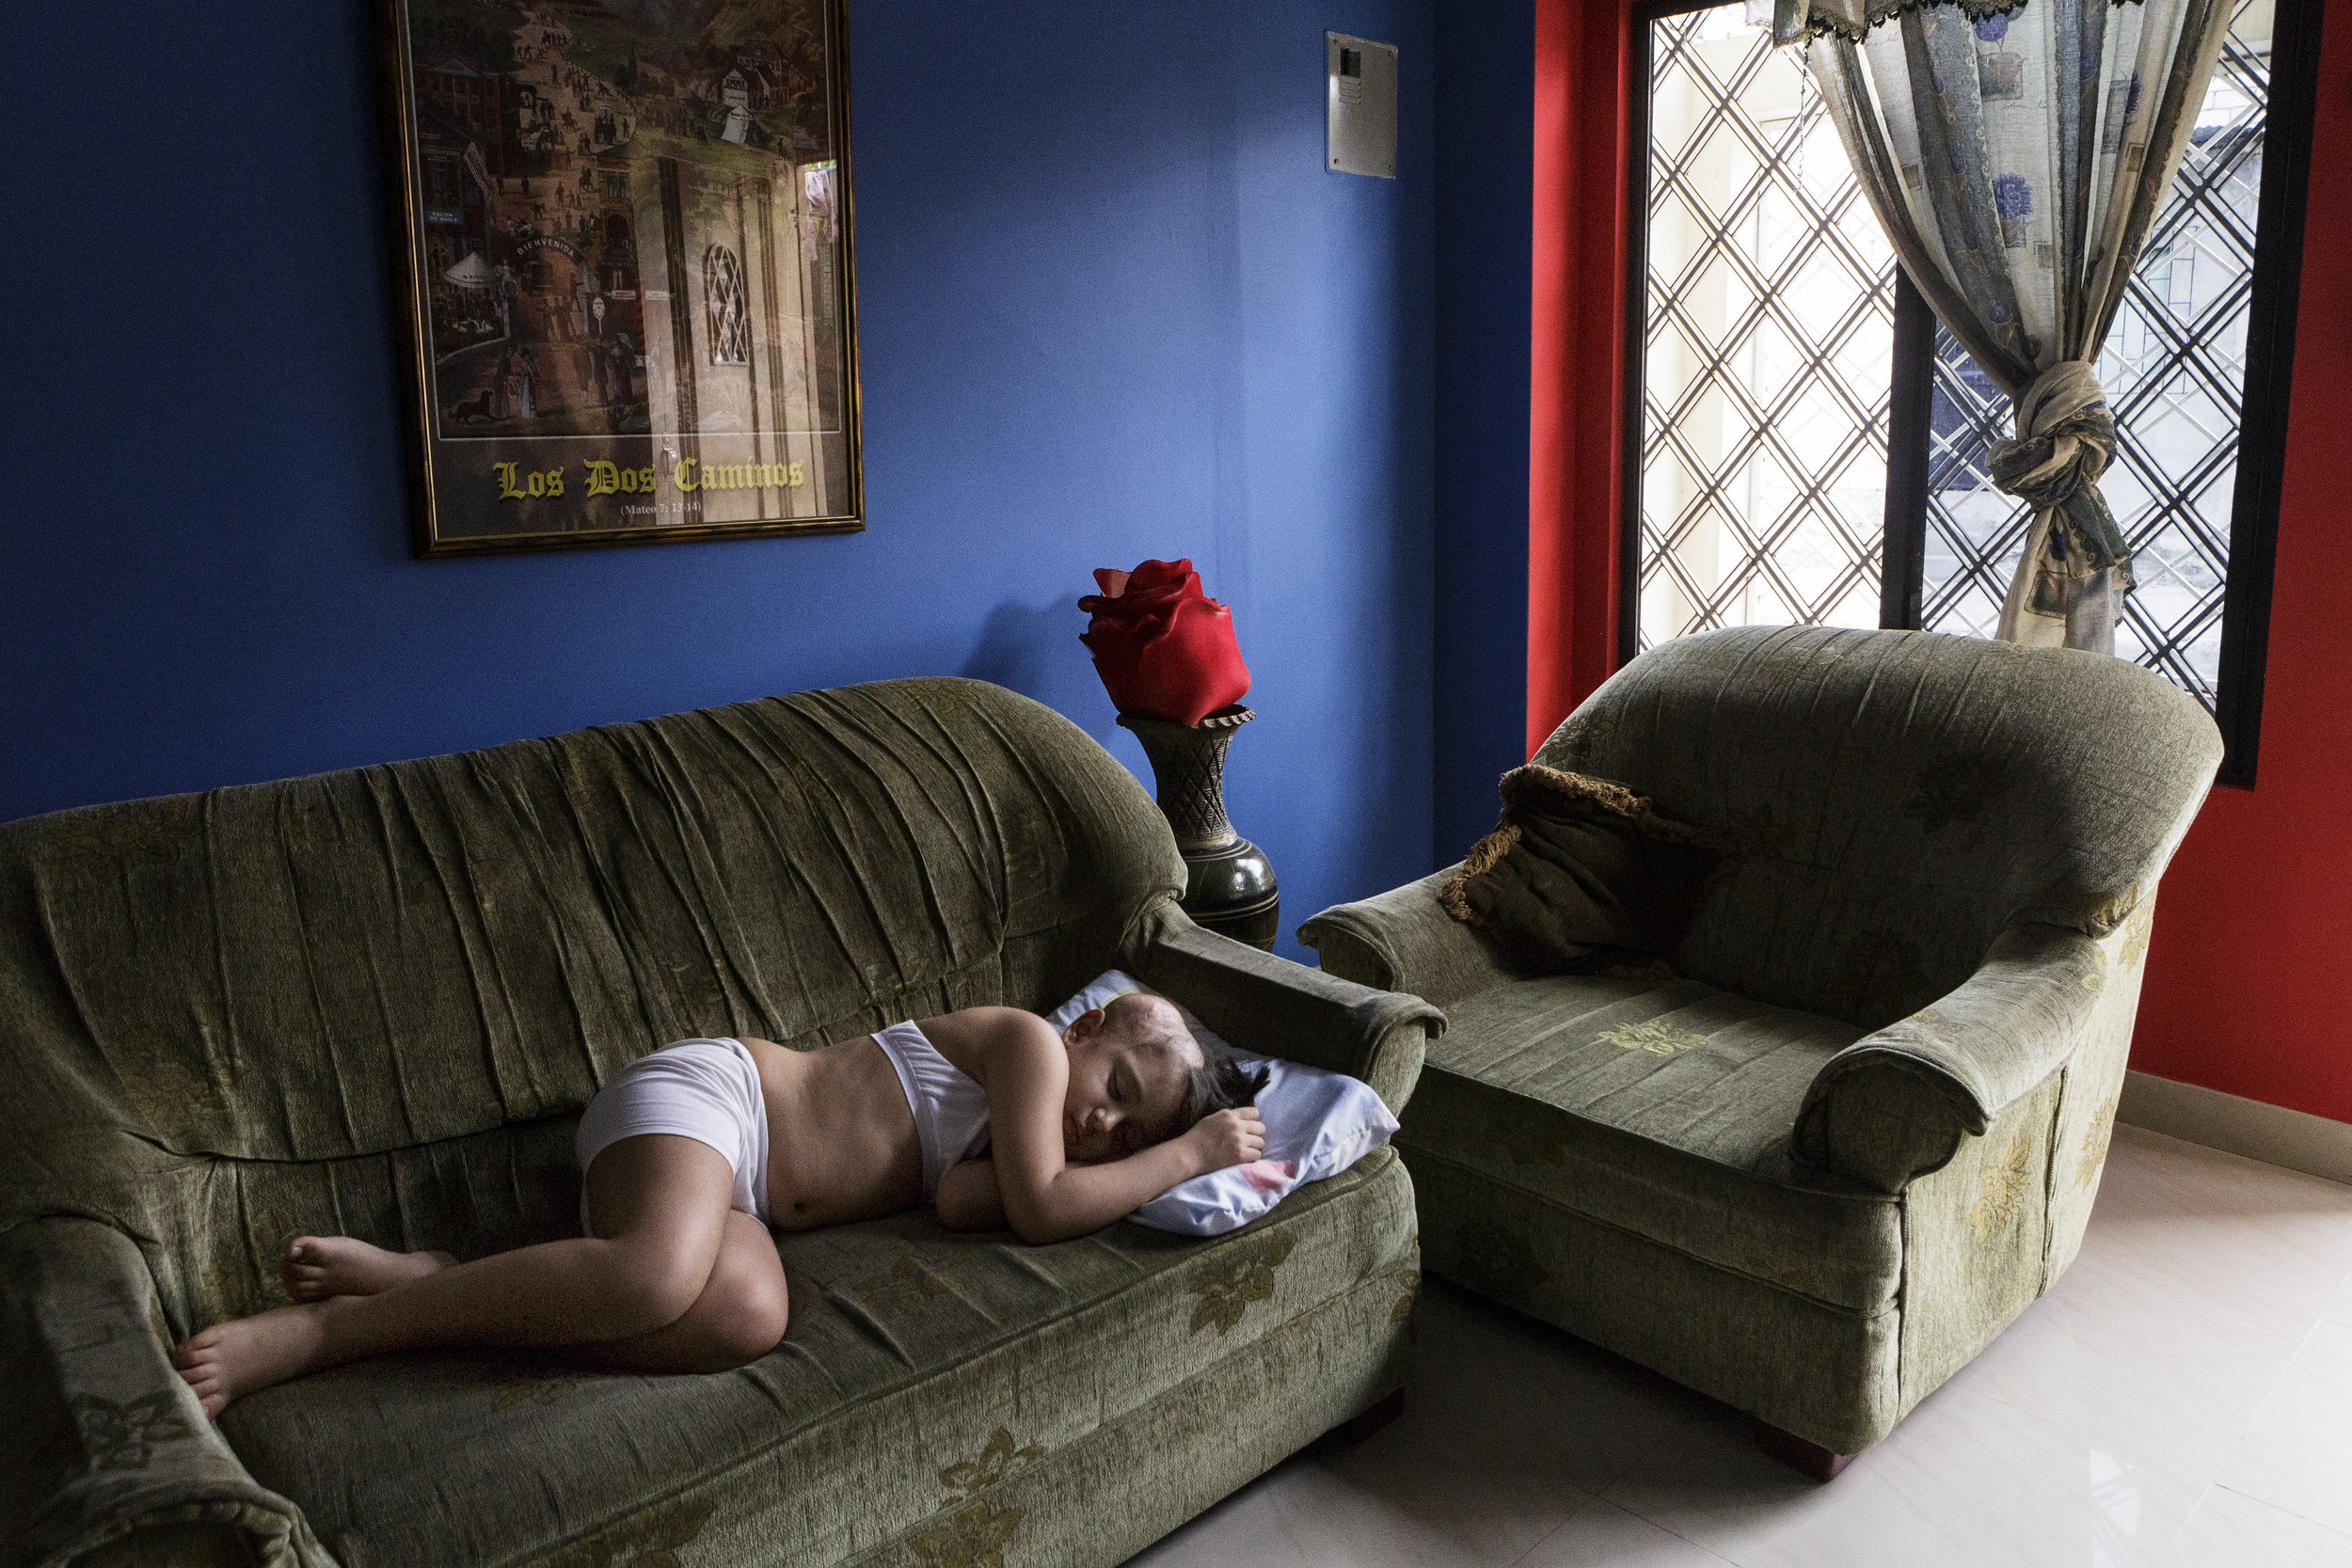 Stephanie Michelle Gallegos Bayas takes a nap in the living room of her family's home in Guayaquil, Ecuador. Four years earlier, doctors misdiagnosed the brain tumor in seven-year-old Michelle's skull as benign.